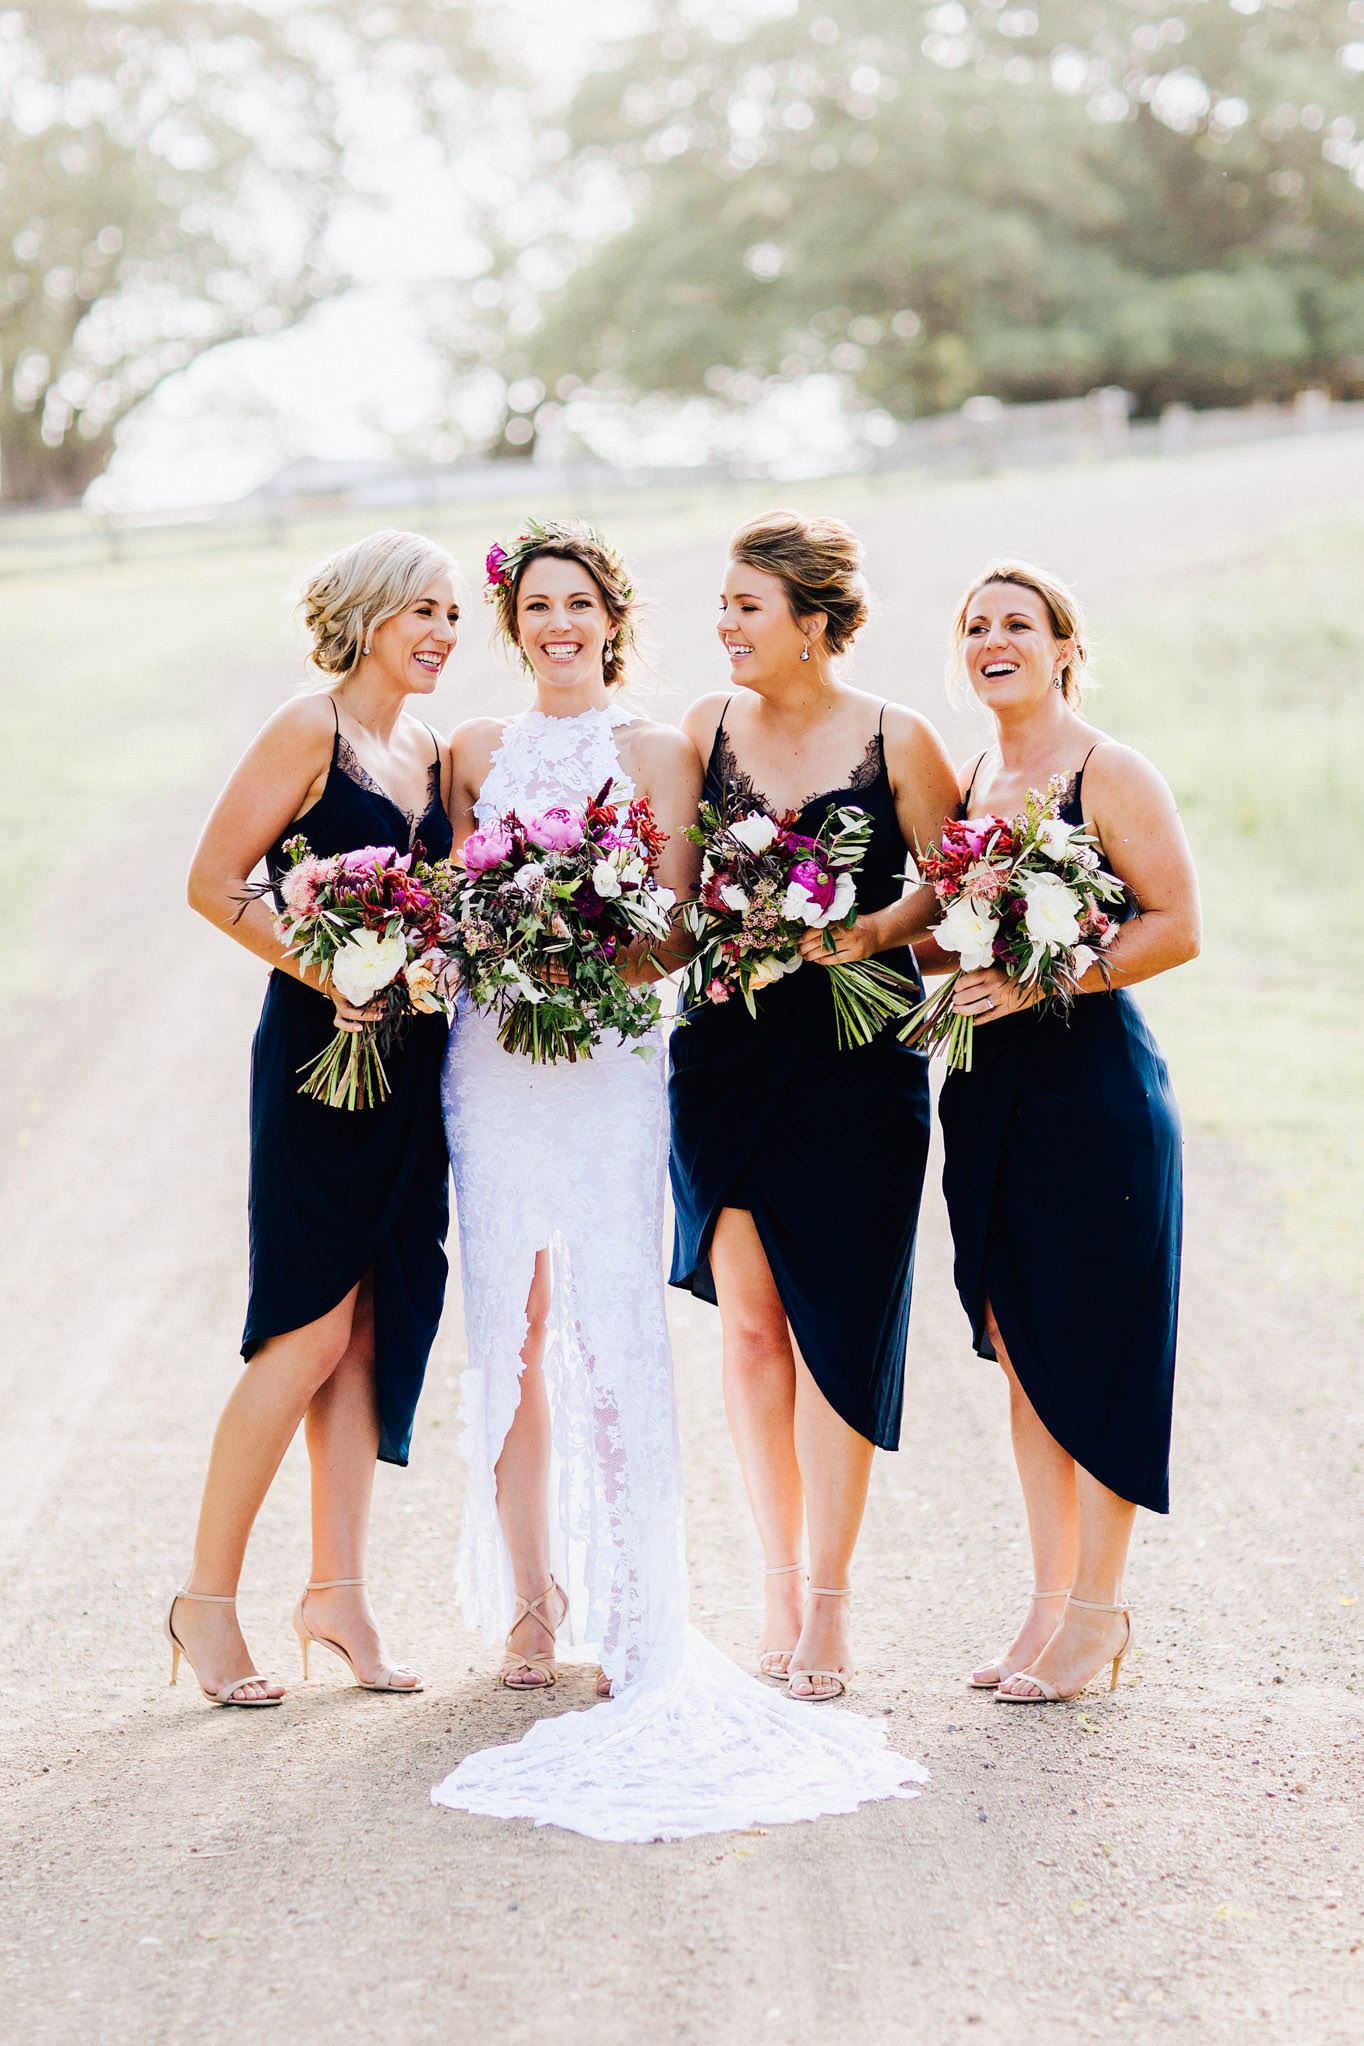 TocalHomestead_WeddingPhotography_LaurenAnnePhotography-1085.jpg